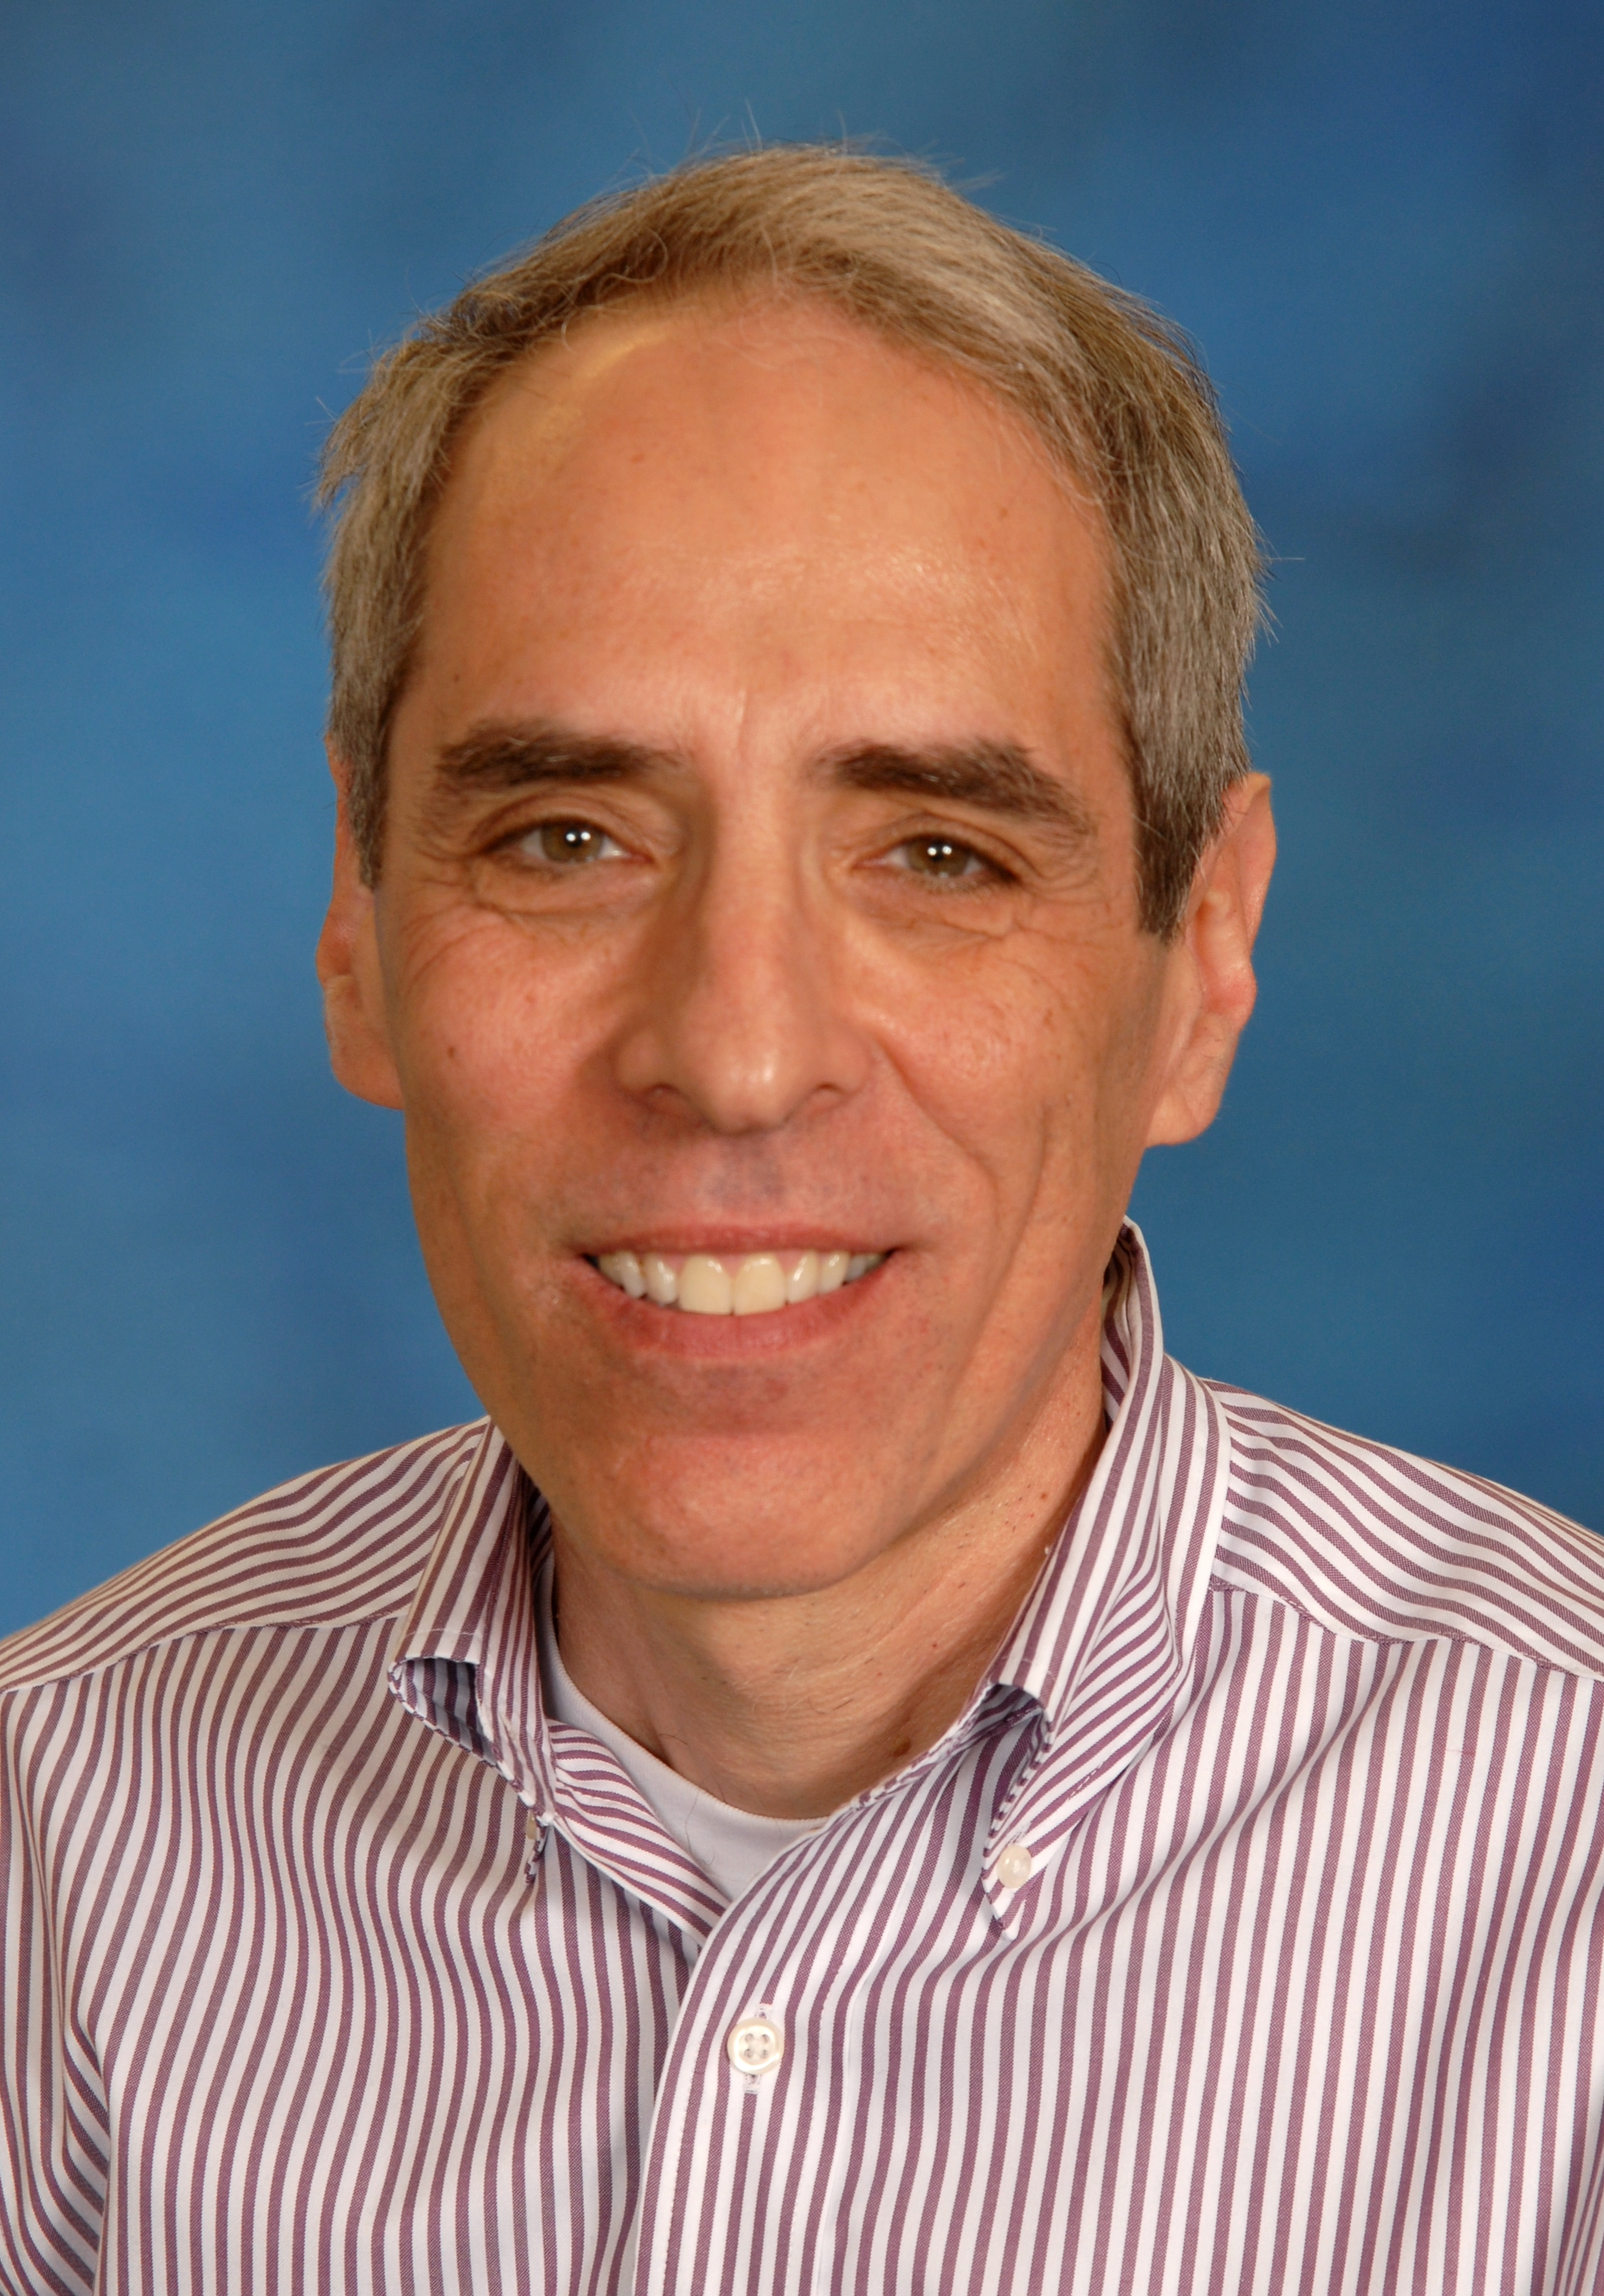 Henry S. Rose, MD - Specializing in body imaging, breast imaging and biopsy